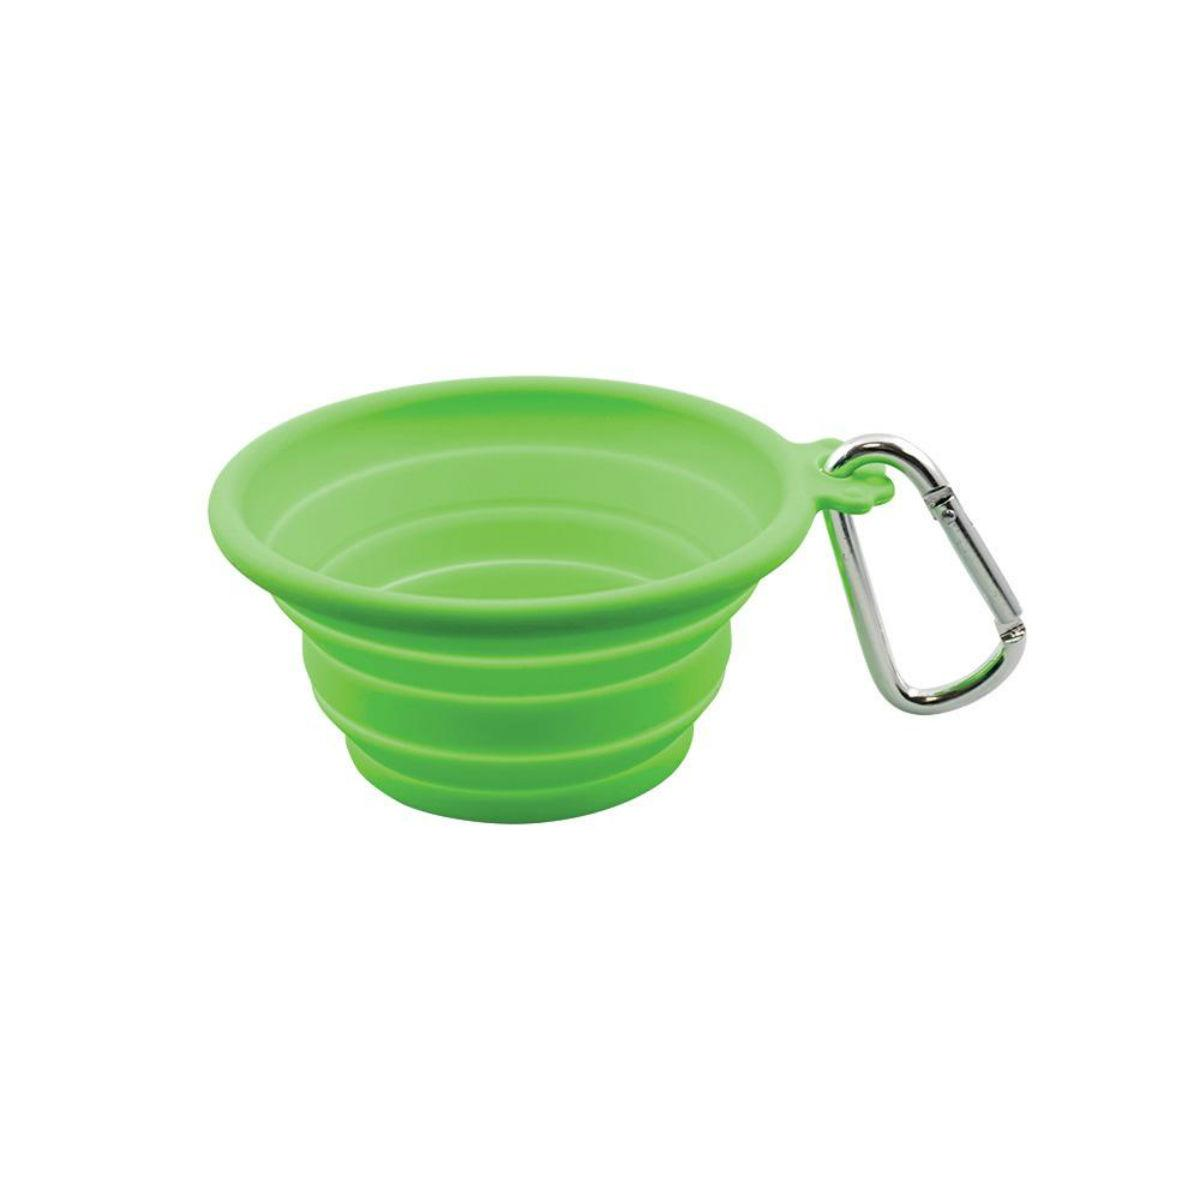 FFD Pet Silicone Collapsible Dog Travel Bowl - Lime